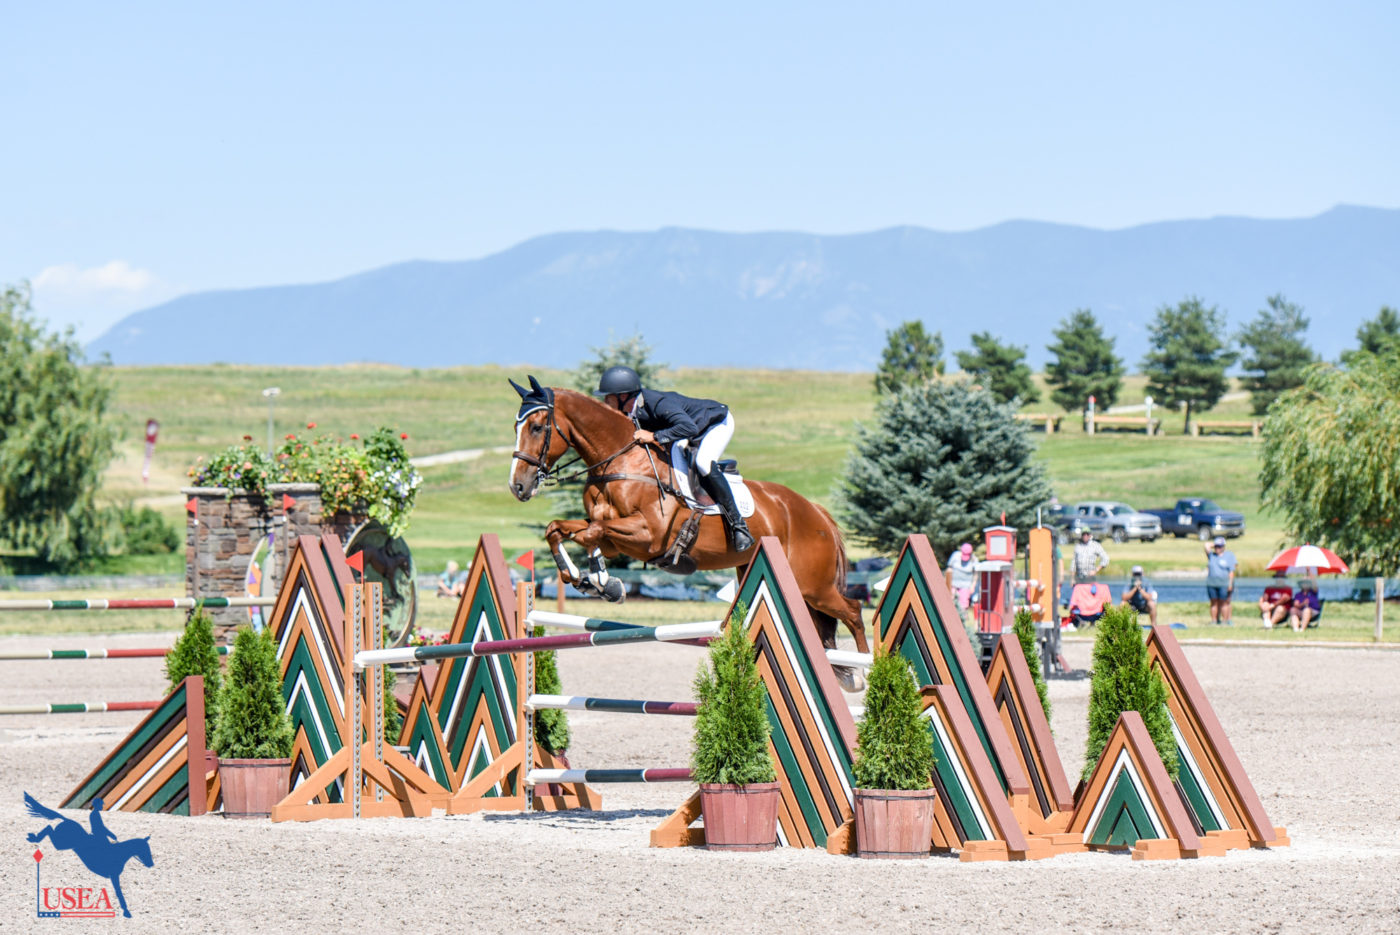 CCI3* - 8th - Alexis Helffrich and London Town